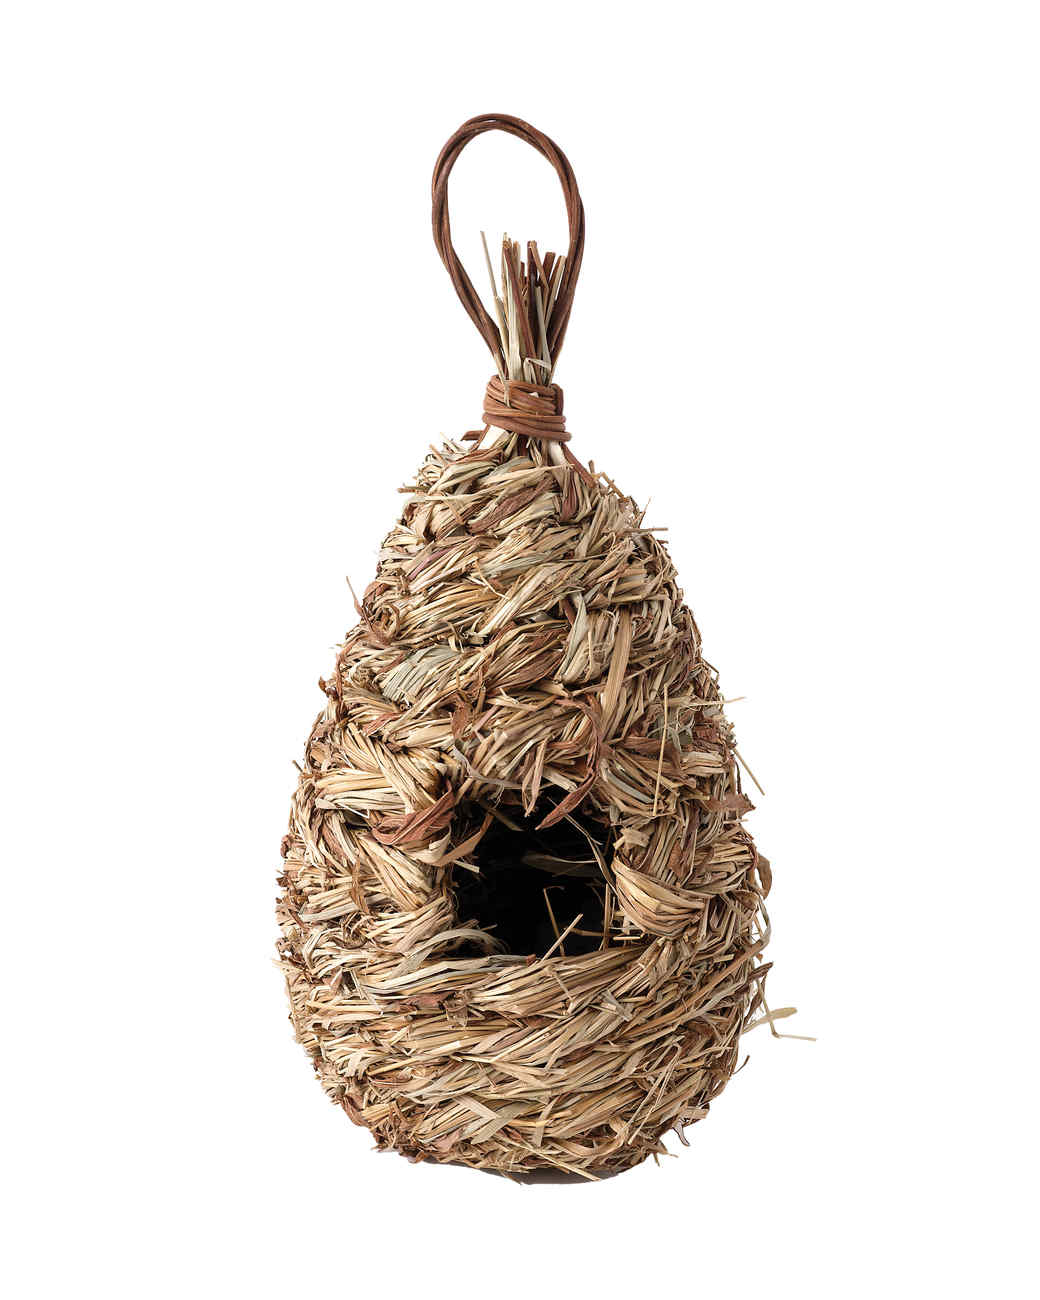 birdhouse-finds-0811mld107422.jpg